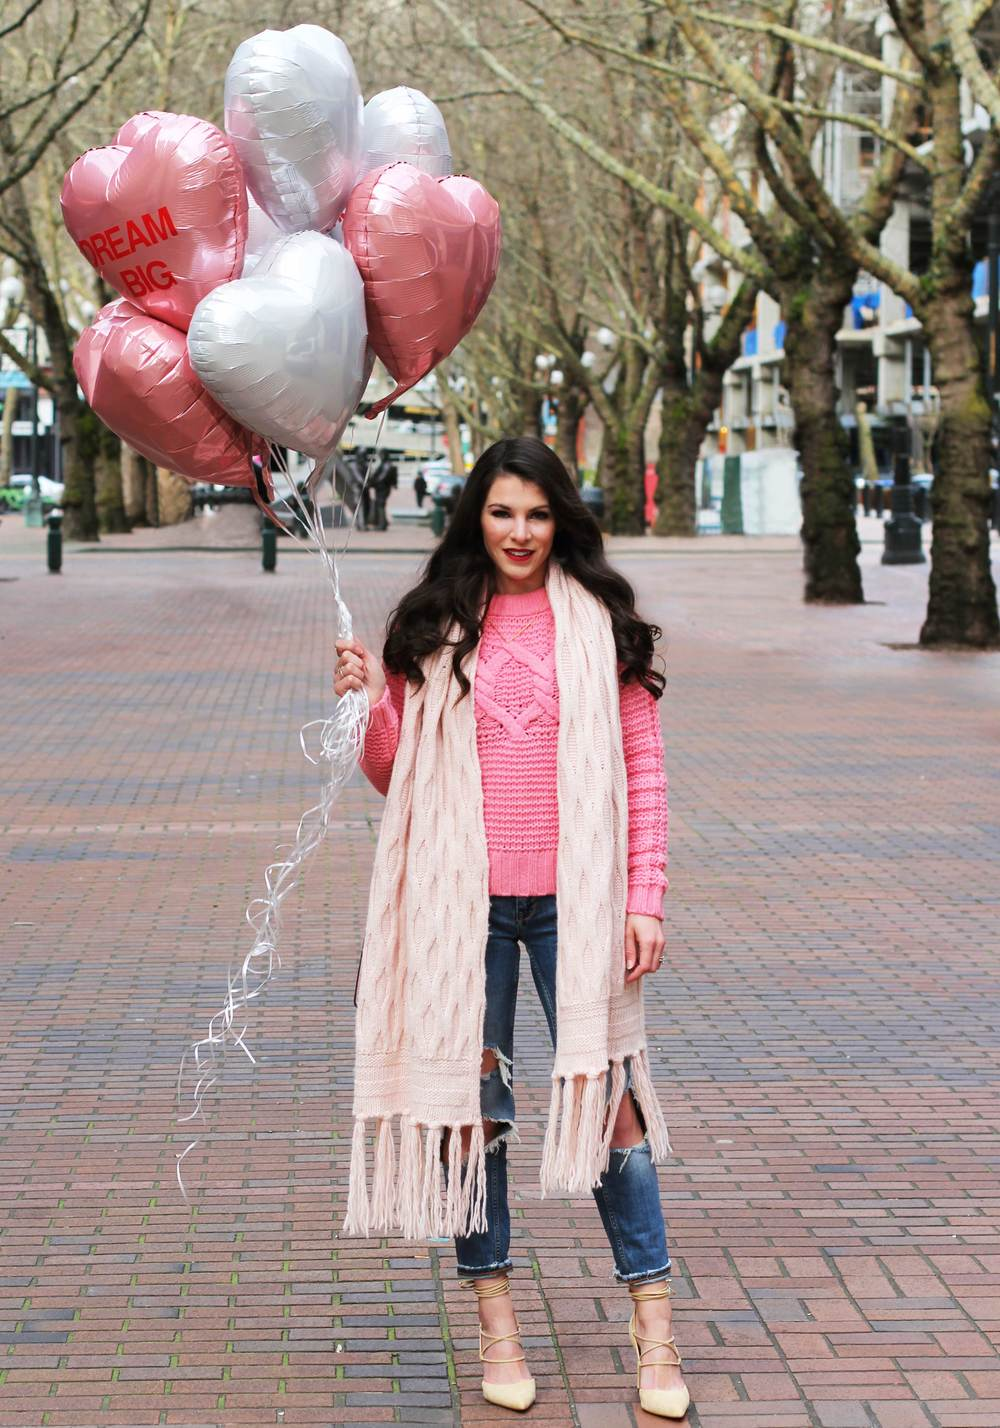 a6486d307 A CASUAL VALENTINE S DAY   DIY CONVERSATION HEART BALLOONS — Me and ...